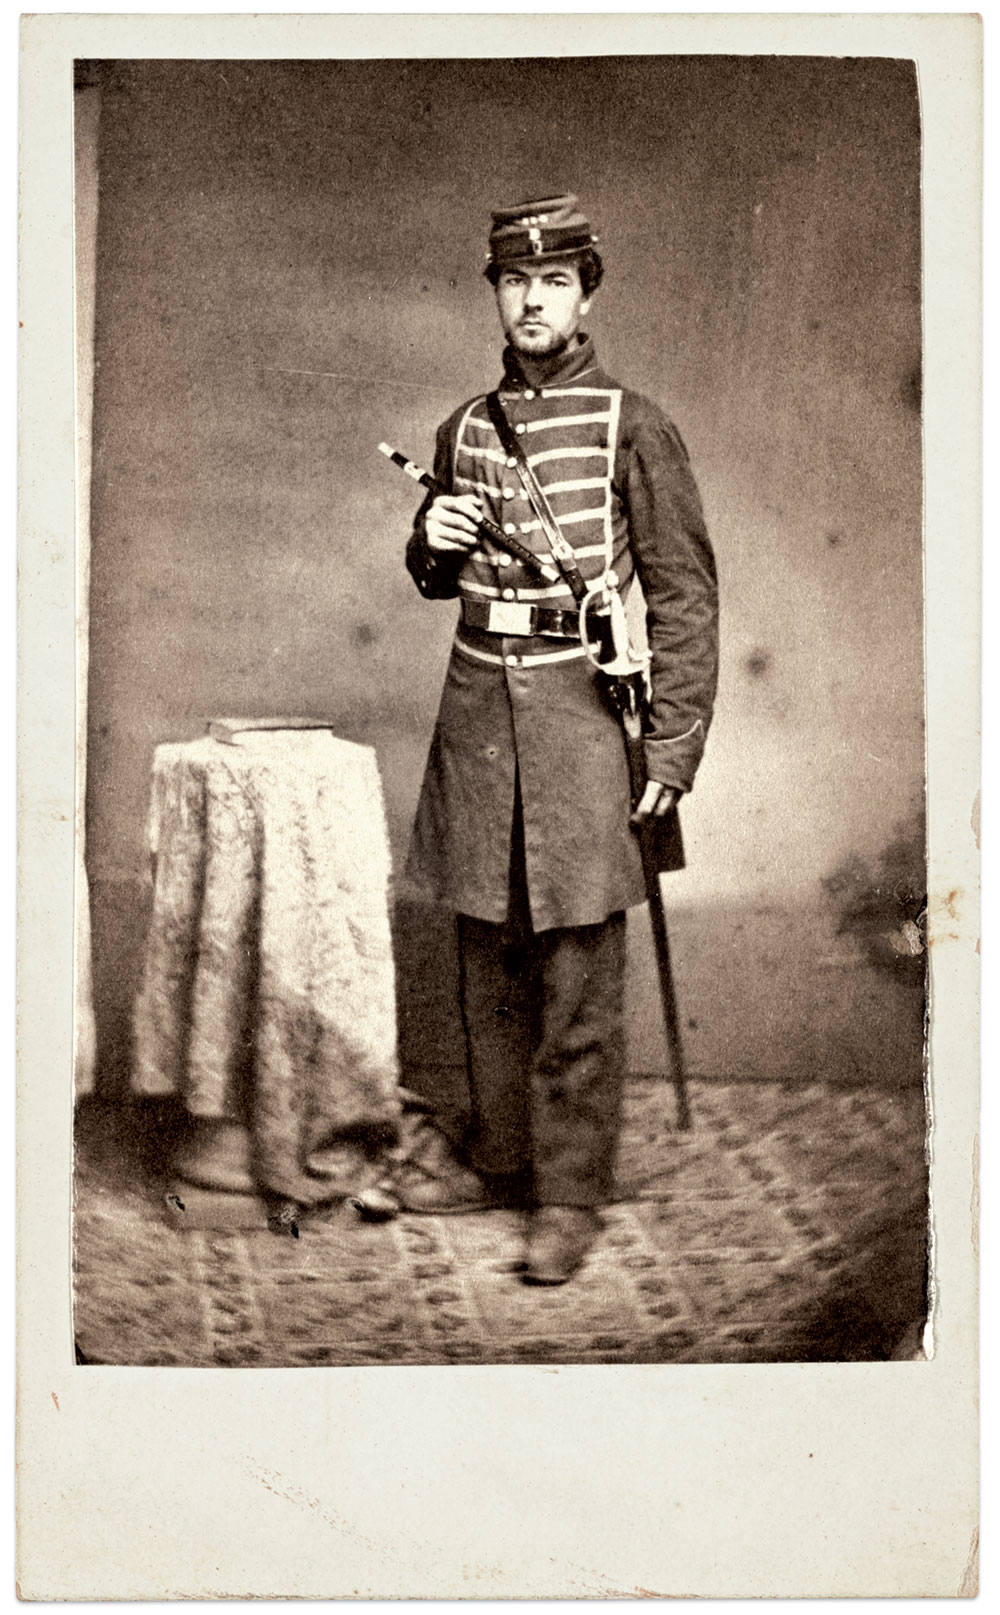 Carte de visite by D'Almaine of Baltimore, Md. The Liljenquist Family Collection at the Library of Congress.